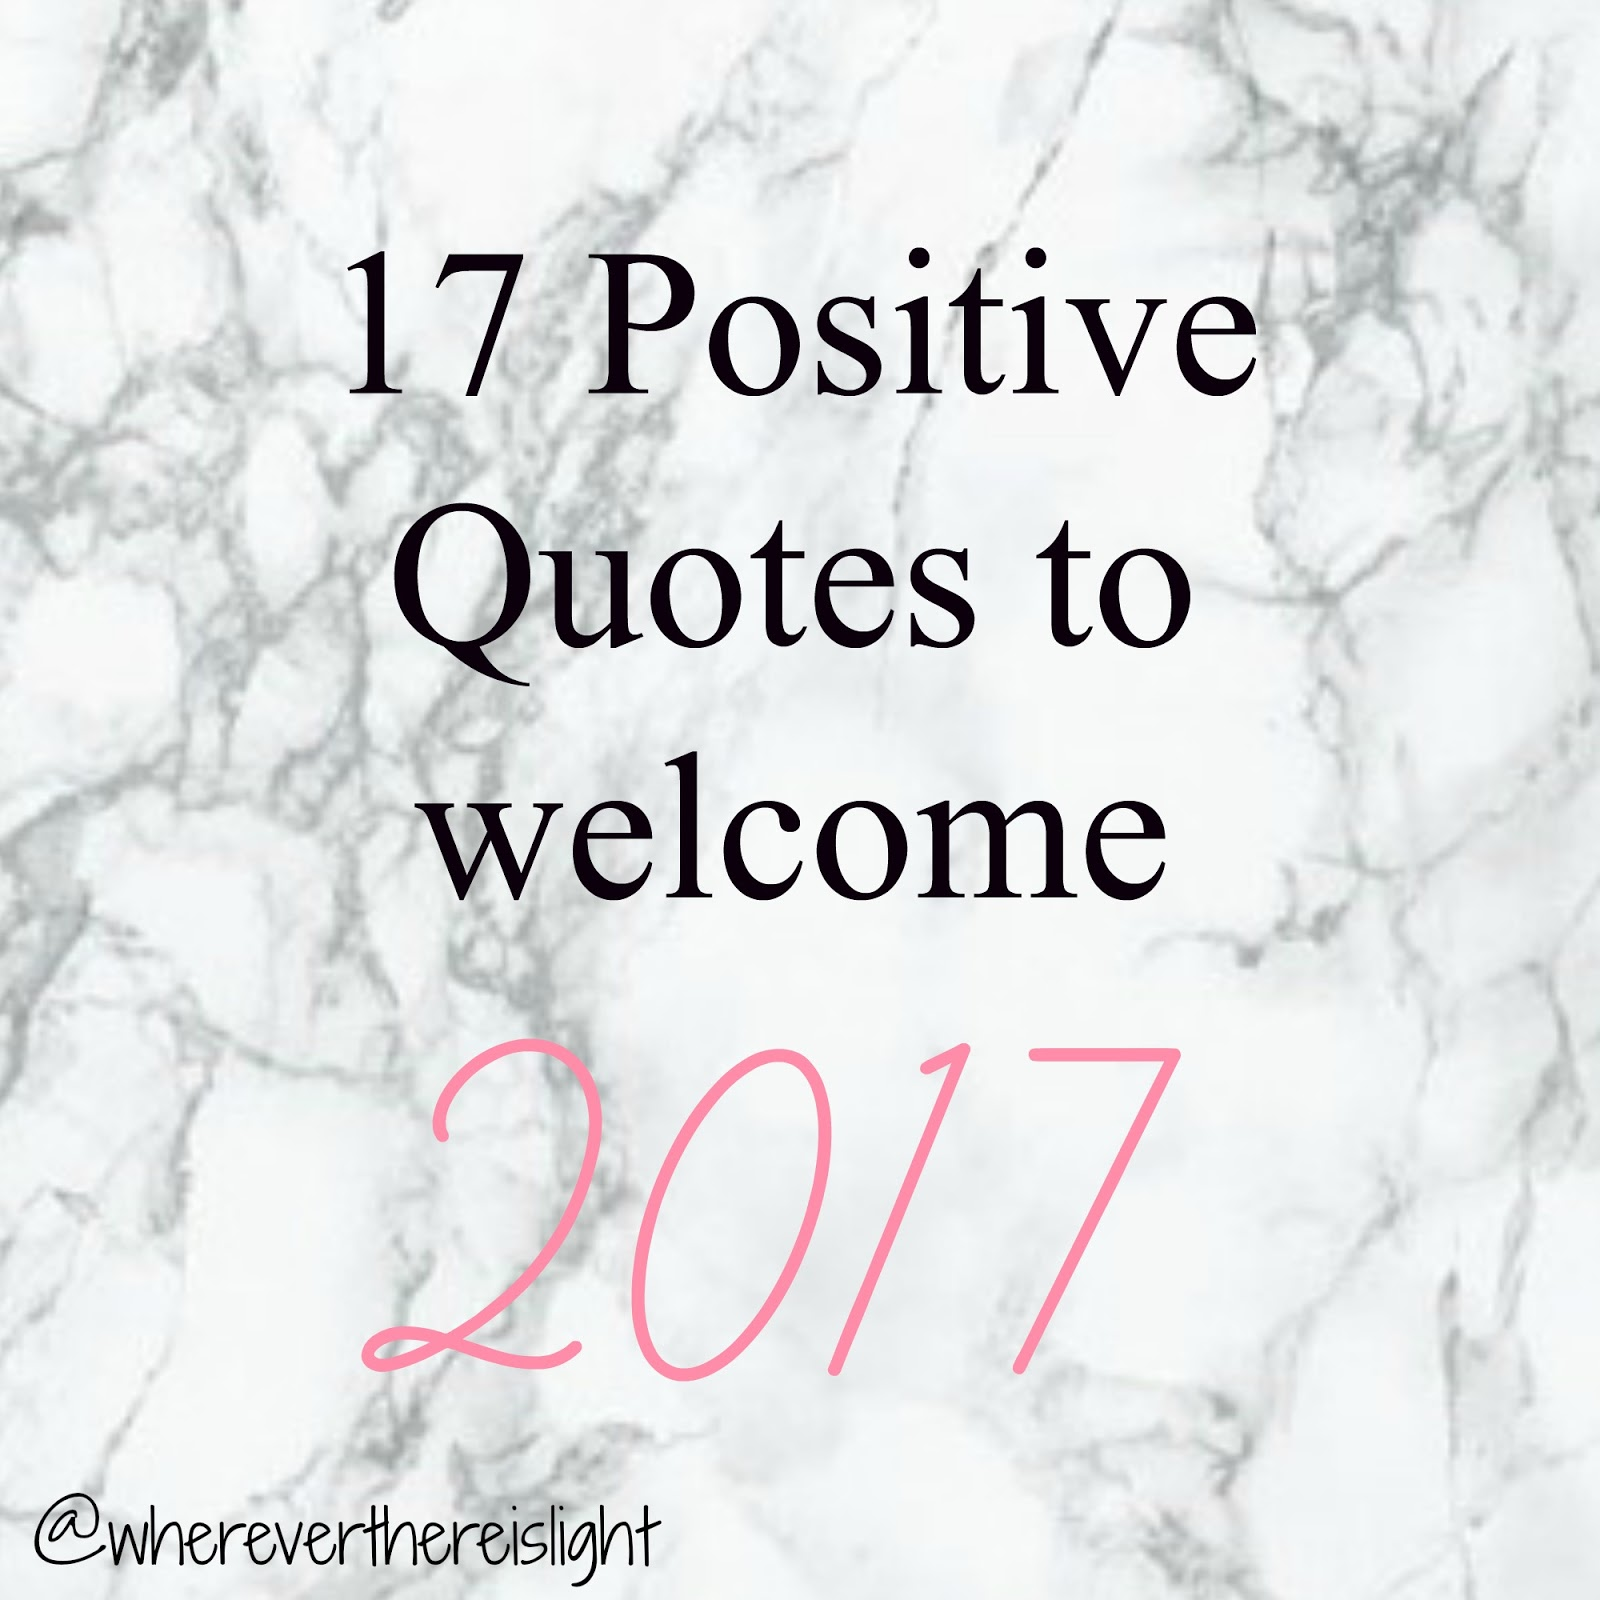 Welcome Quotes 17 Positive Quotes to welcome 2017   Wherever there is Light Welcome Quotes